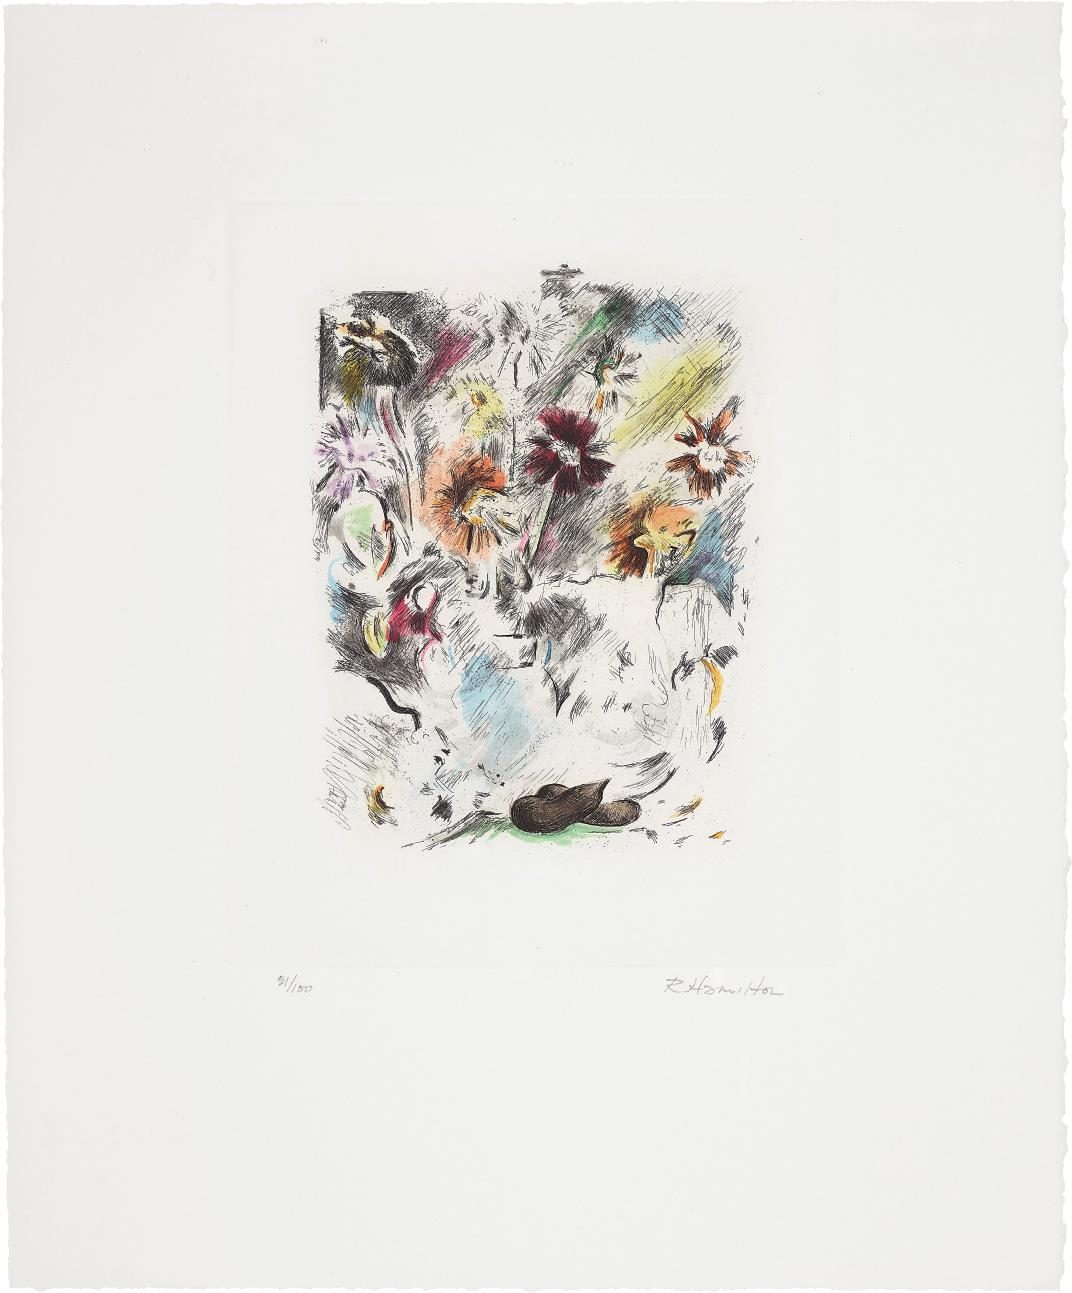 Richard Hamilton-Multi-Coloured Flower-Piece-1974